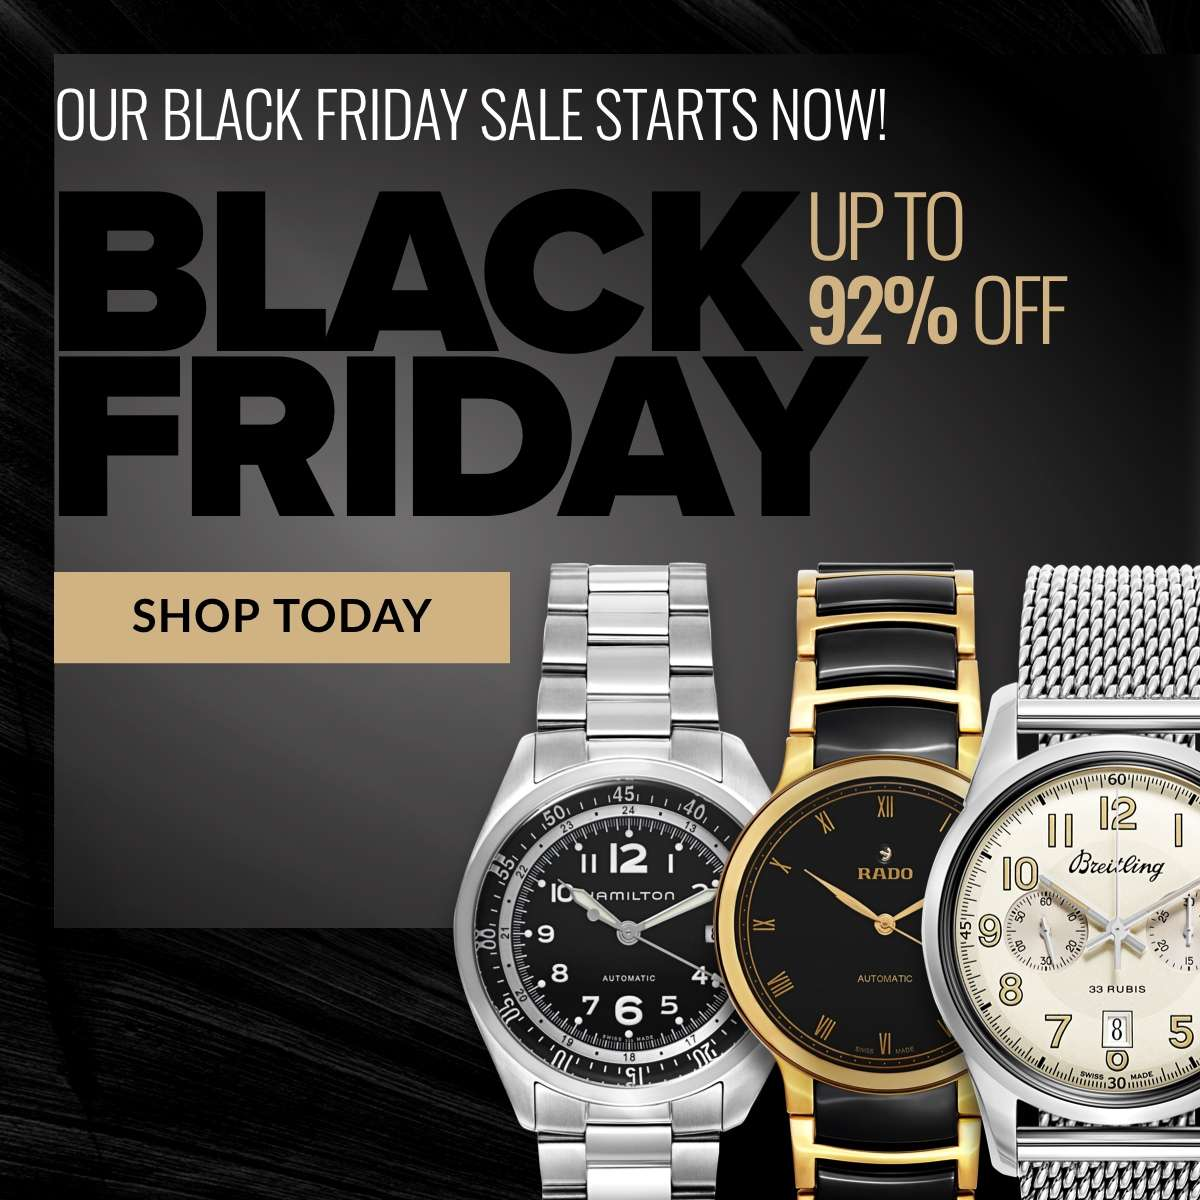 It's that time. It's officaily Black Friday. Enjoy up to 92% savings. SHOP TODAY